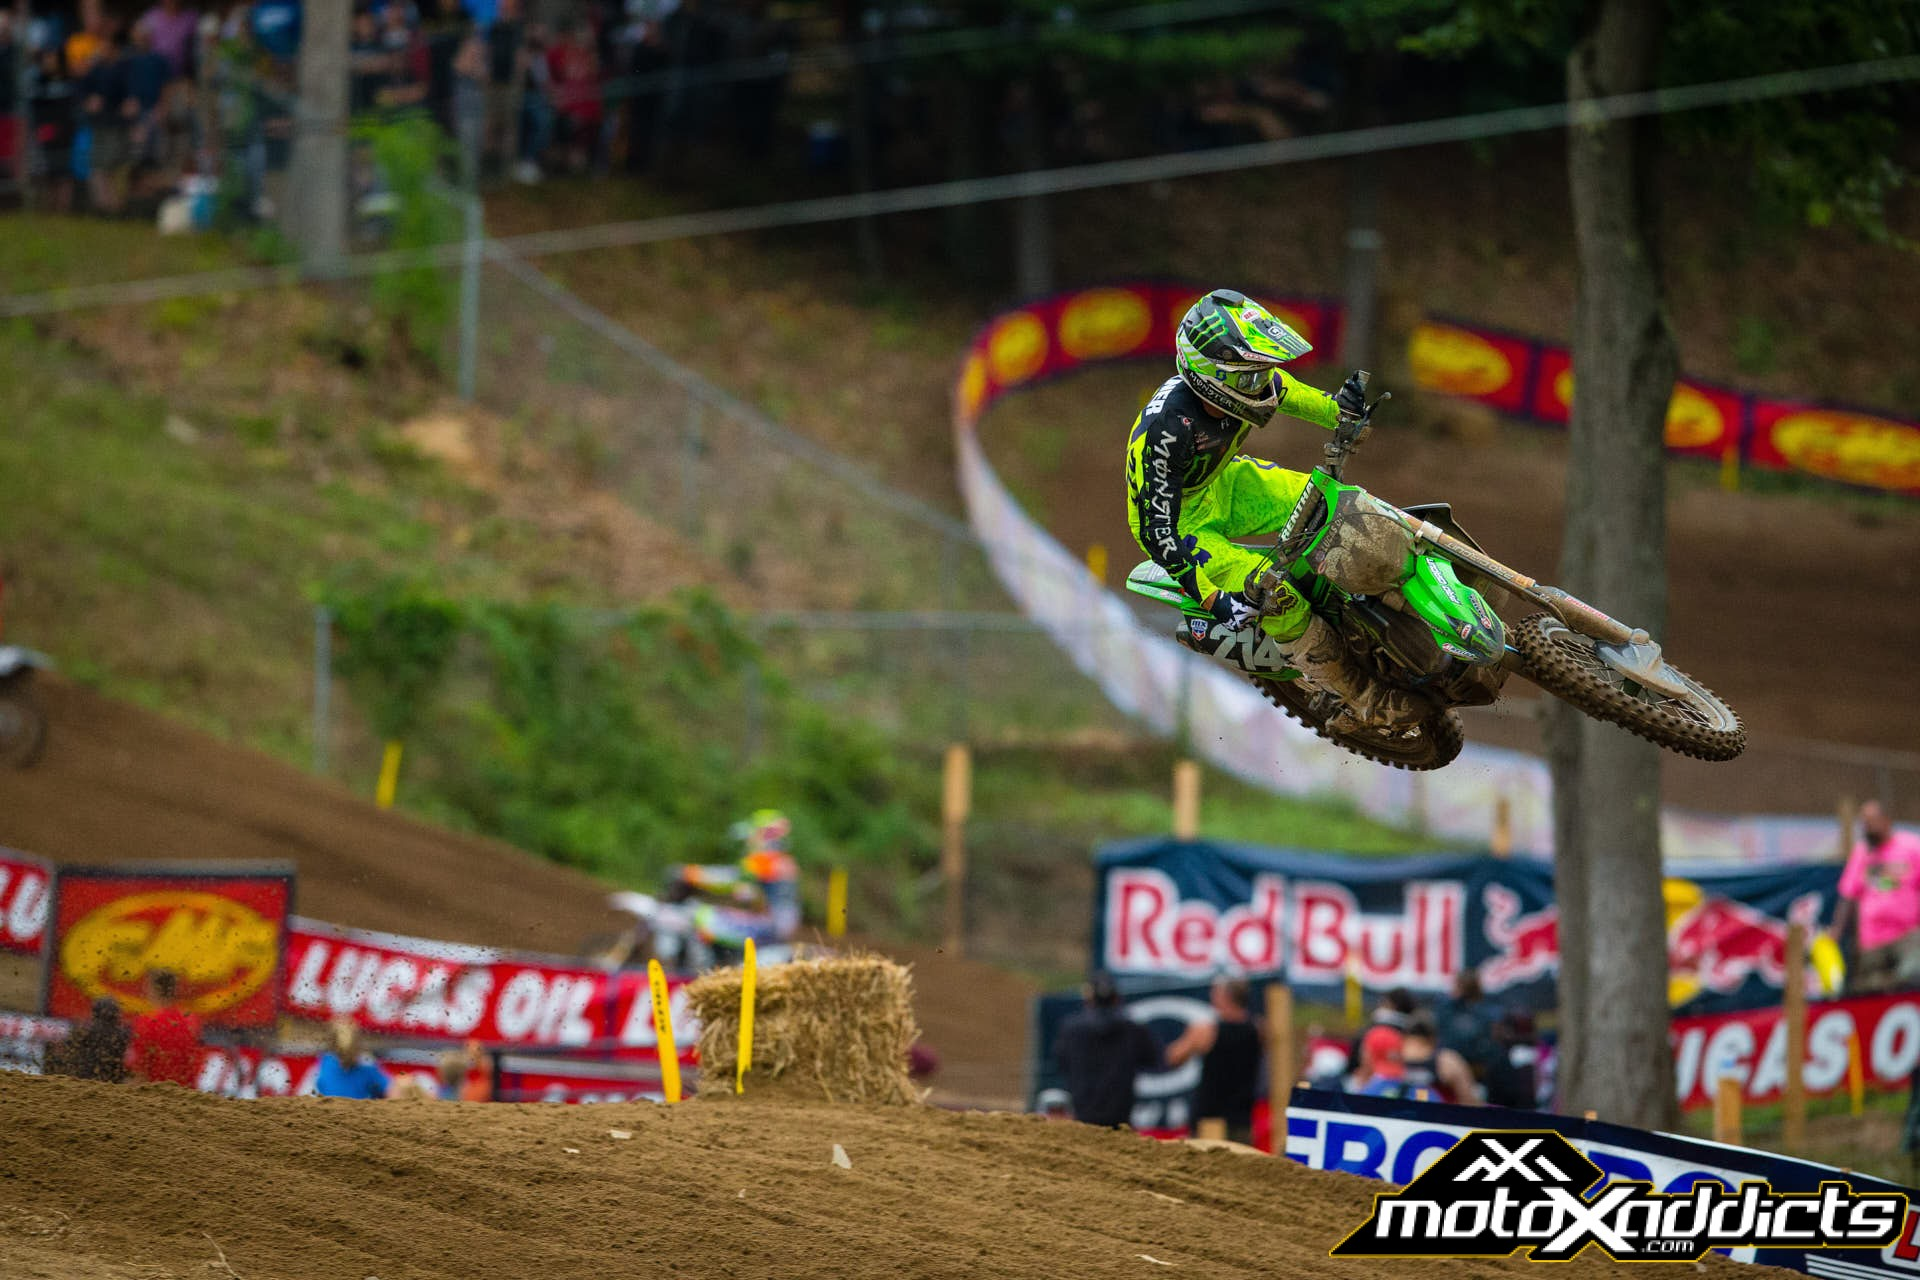 Austin Forkner only clocked the 7th fastest lap time in the motos, but the #214 was the fastest overall qualifier and used that to score two good starts and his first-ever podium.